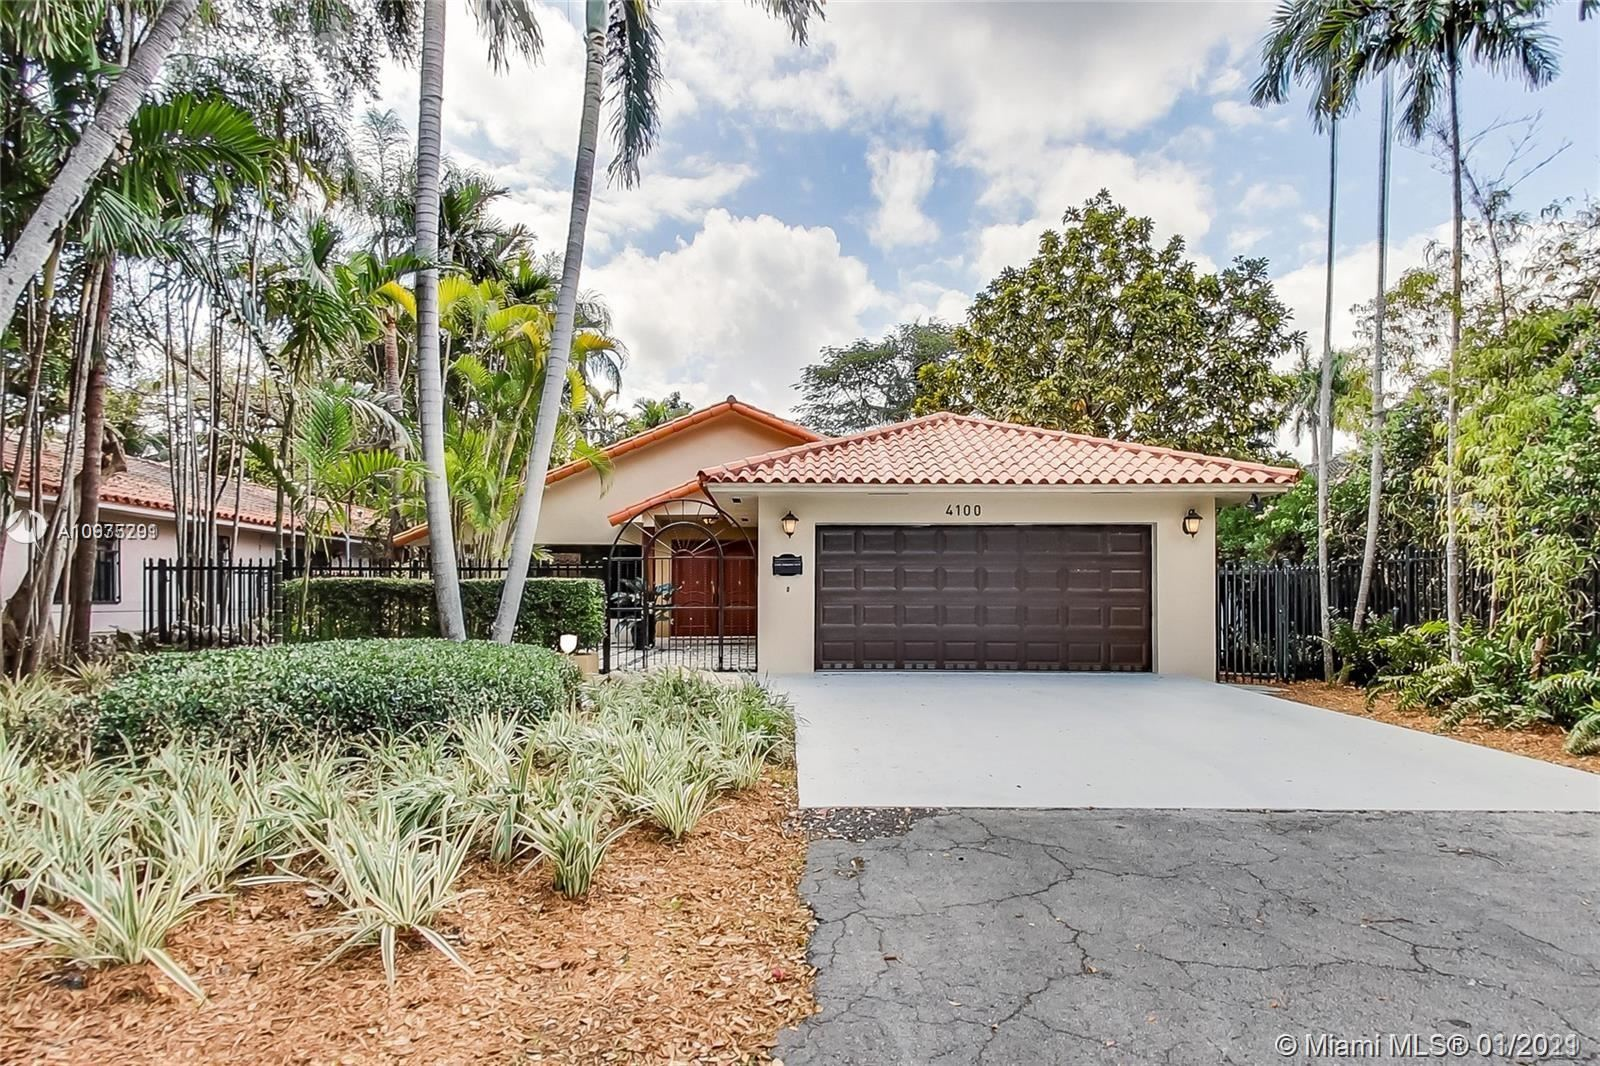 4100 SW 14th St, Miami, FL 33134 - #: A10975291